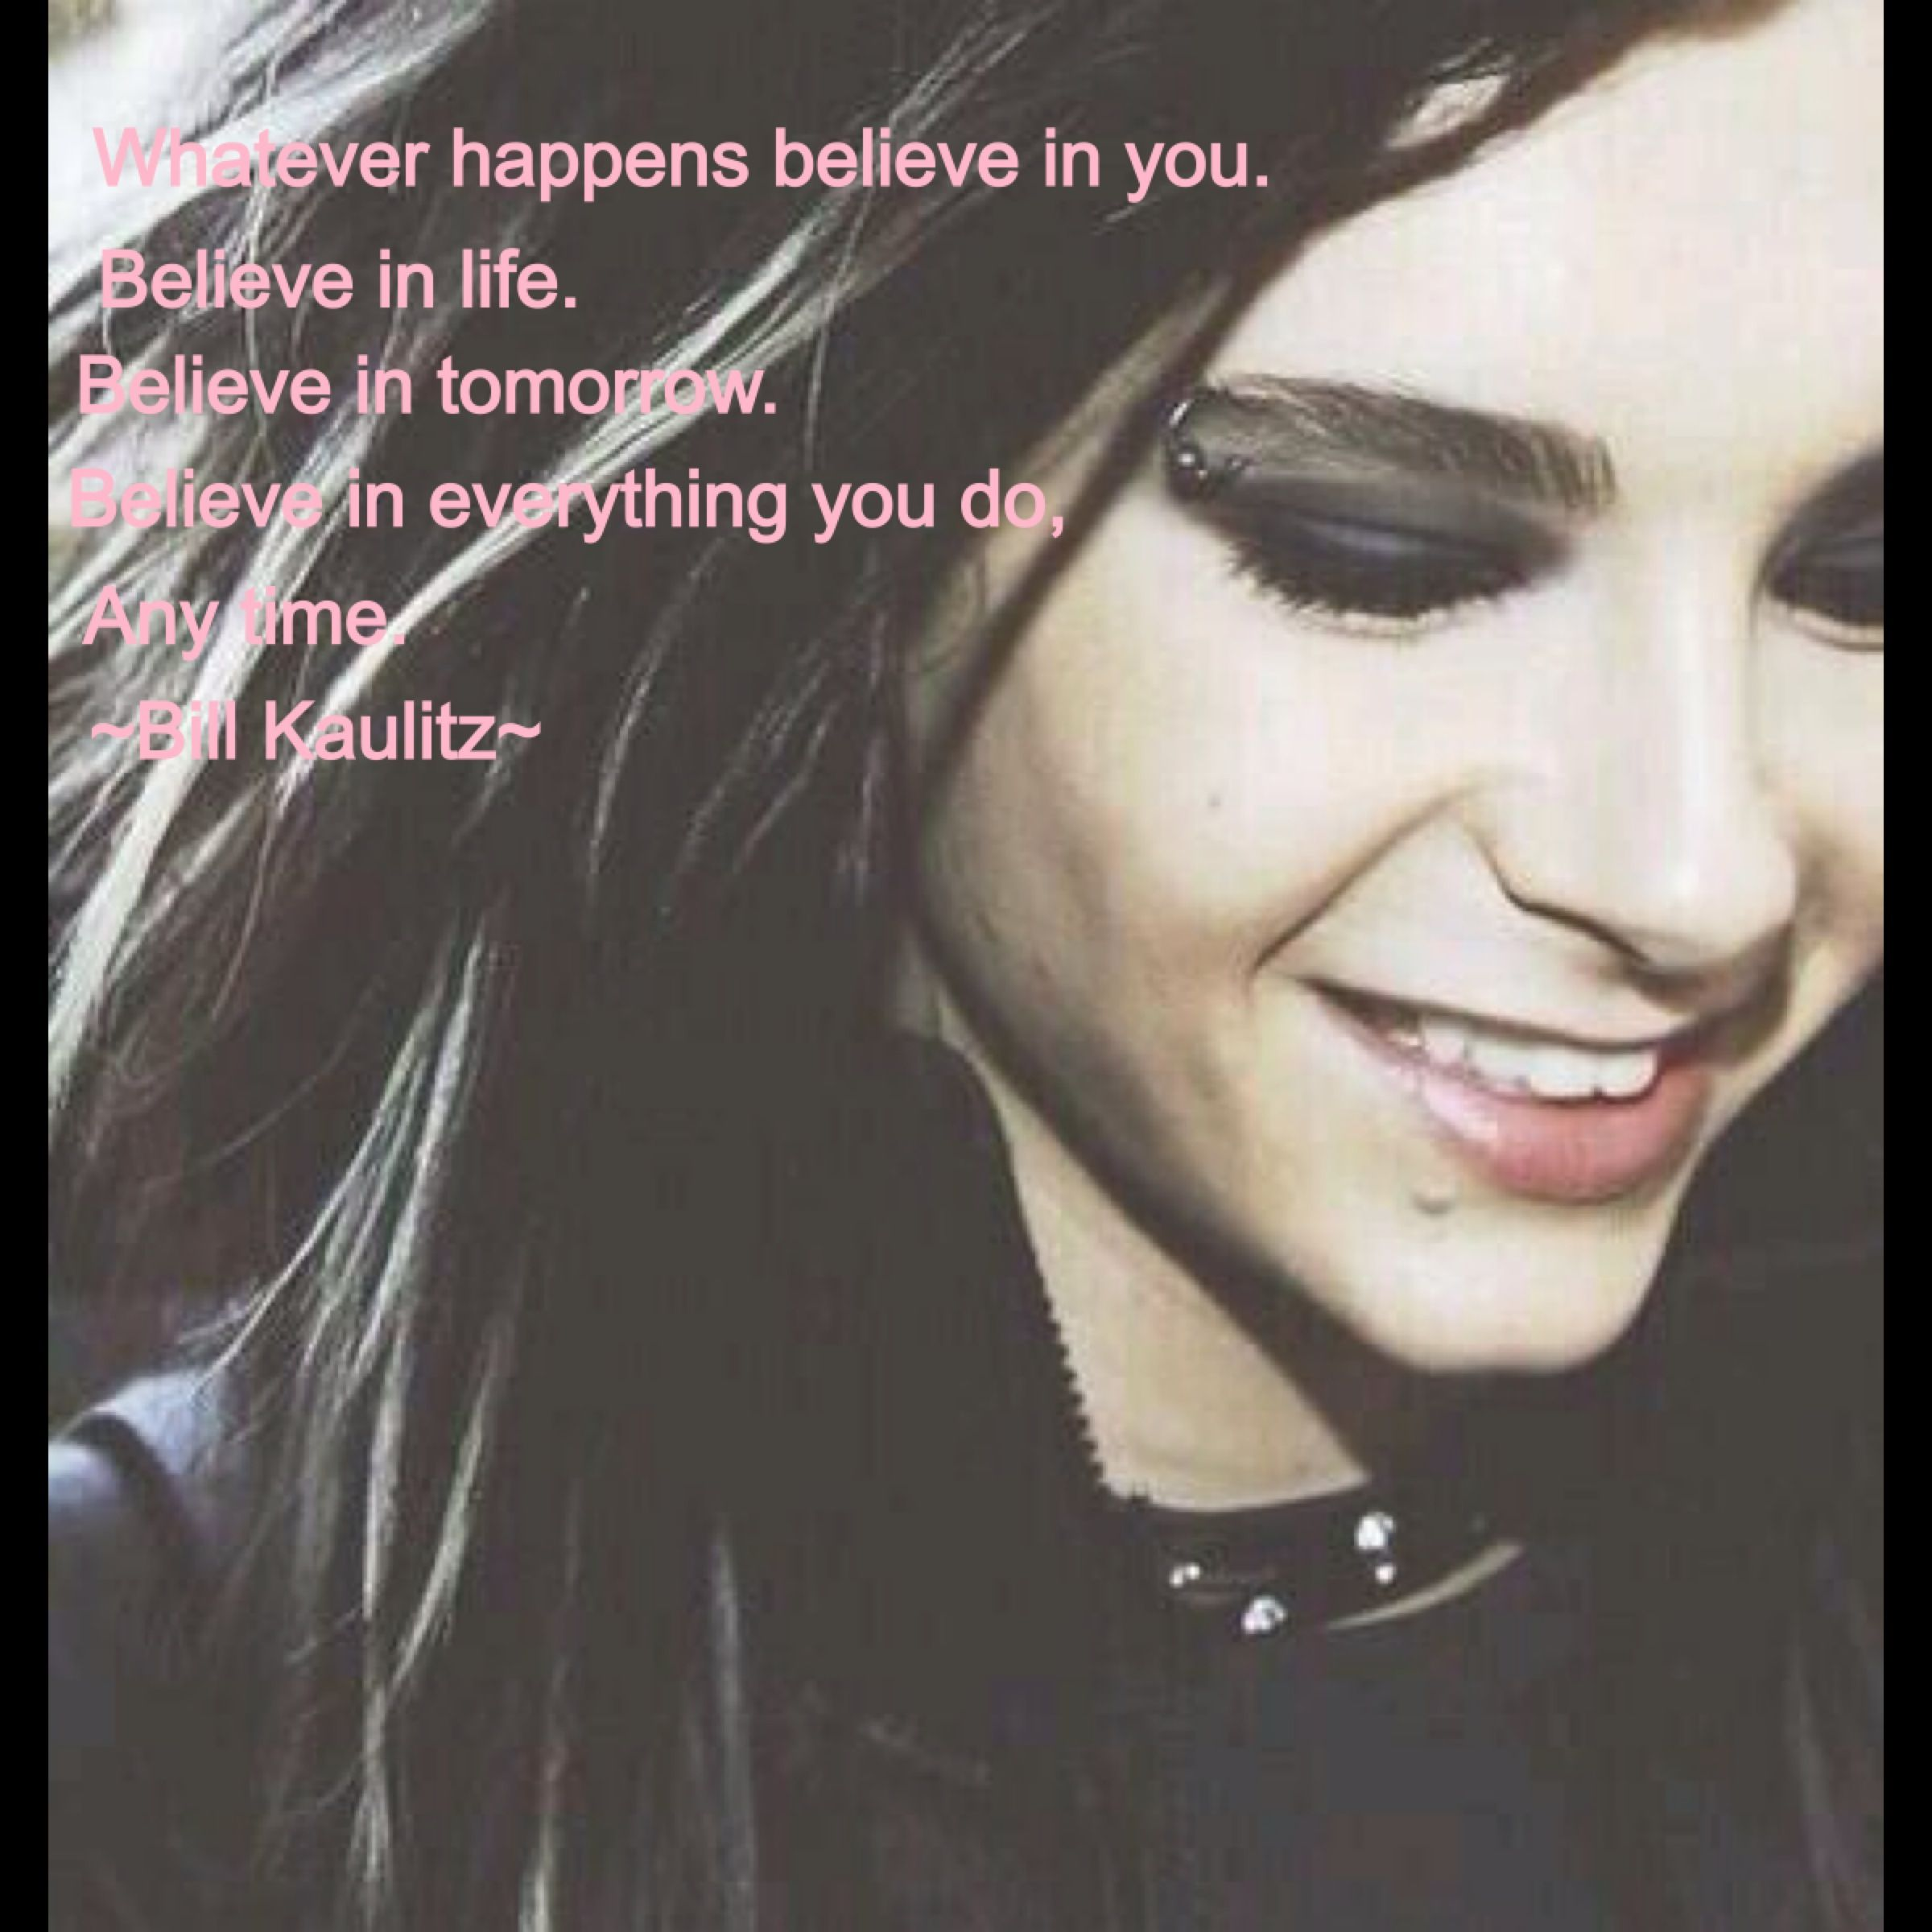 Bill Kaulitz Quotes Love Puros